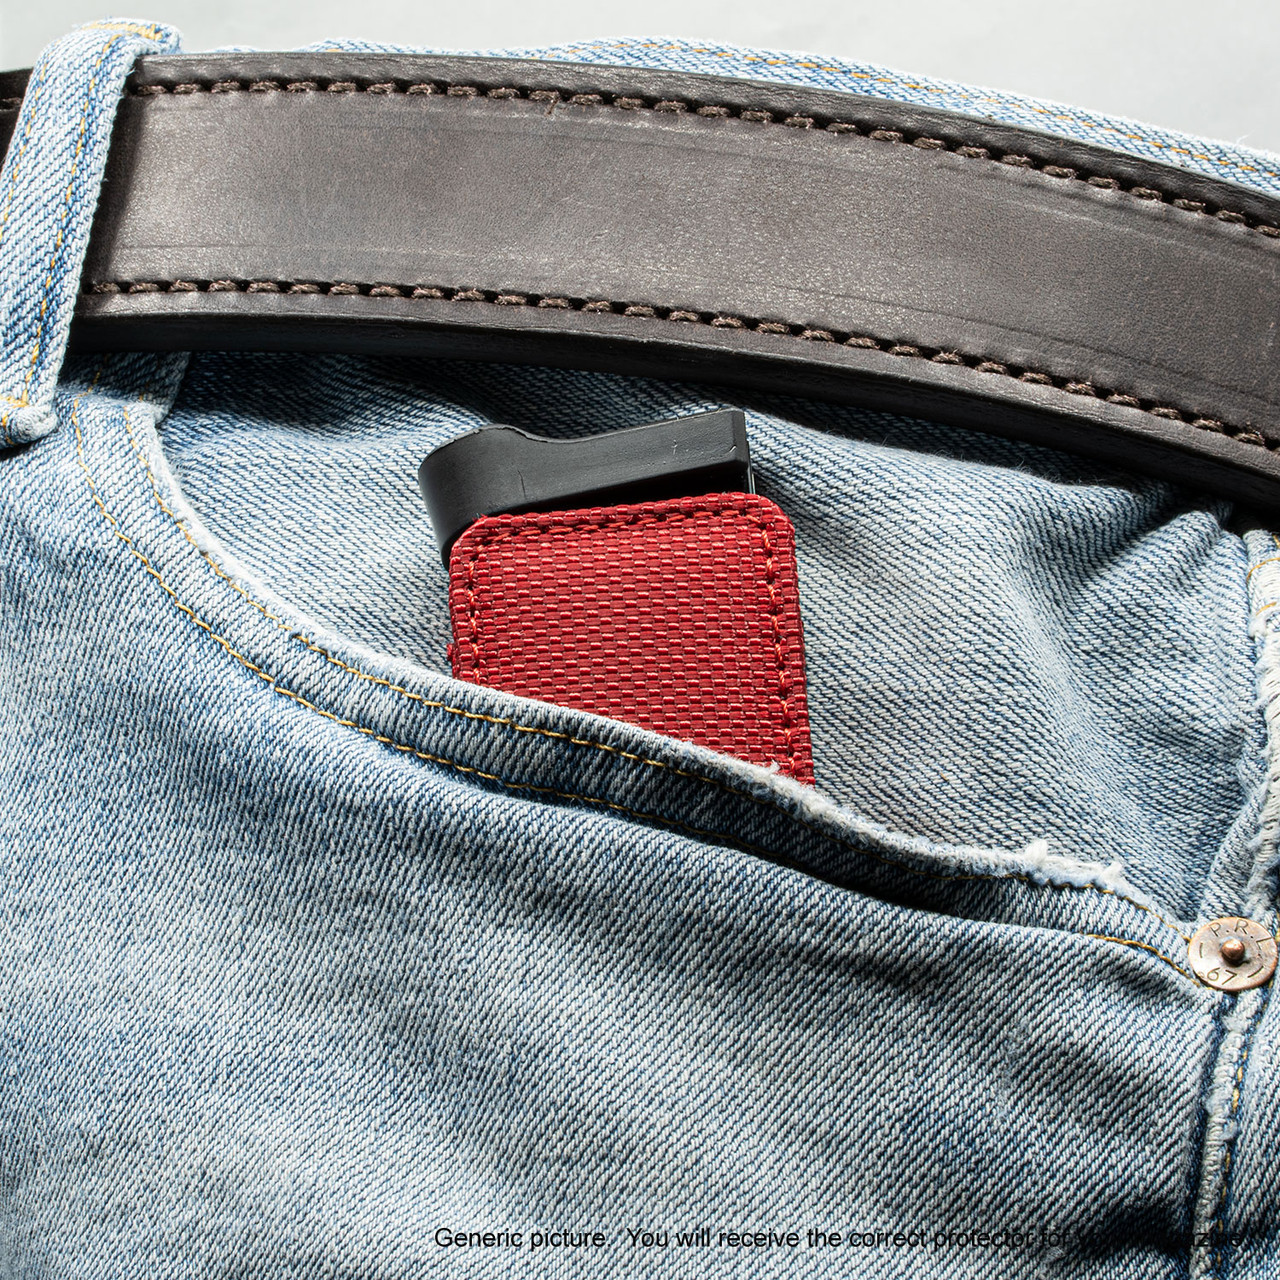 Springfield 911 9mm Red Covert Magazine Pocket Protector